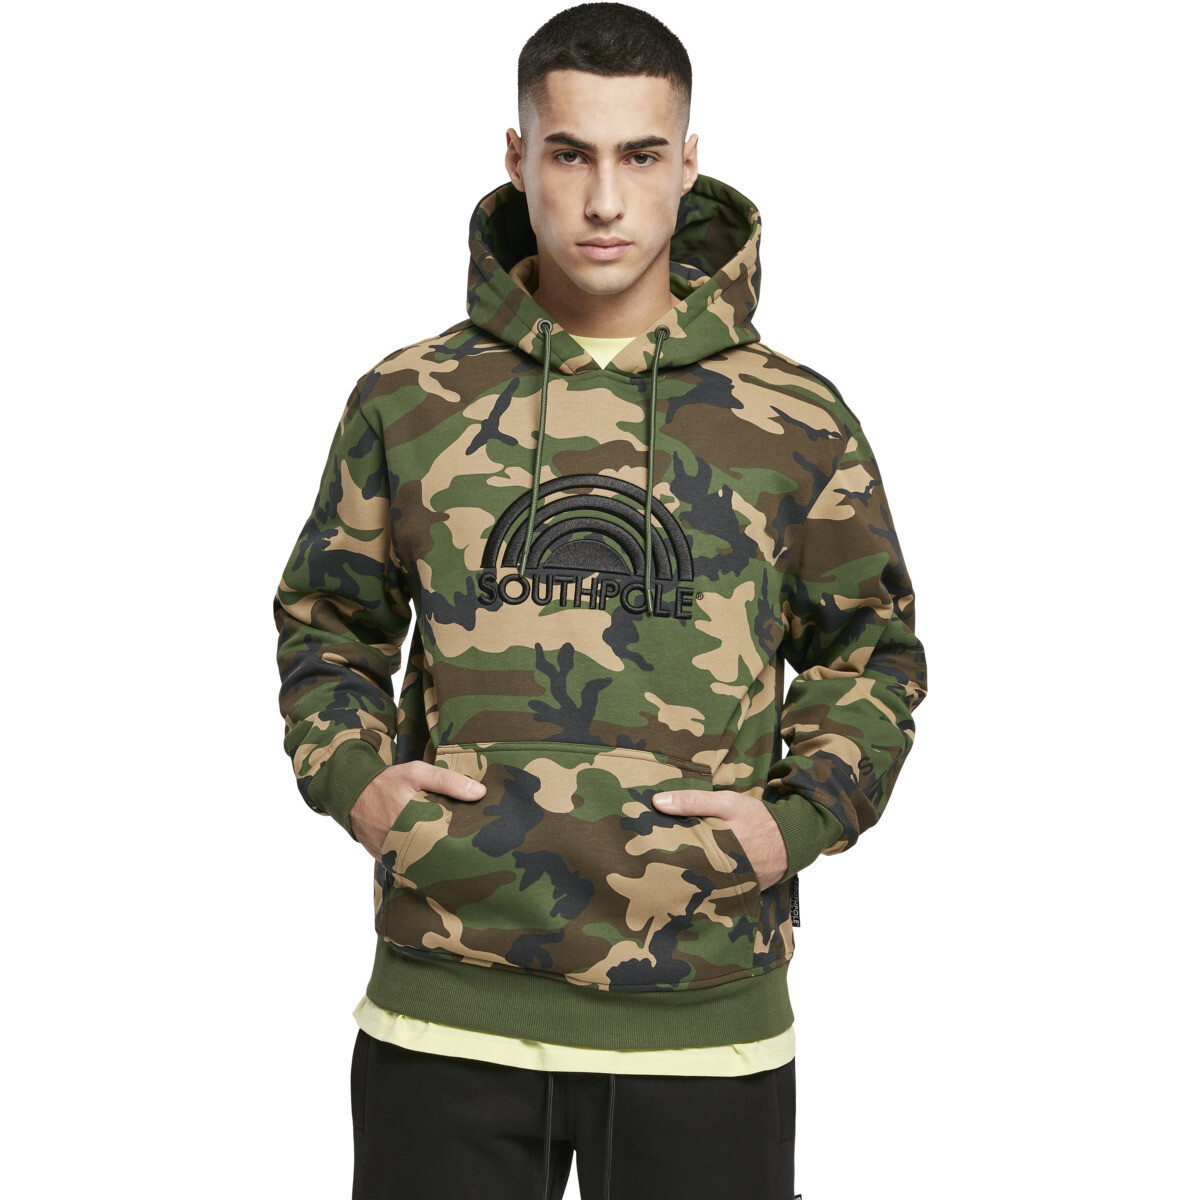 Southpole 3D Print Hoody - Camouflage